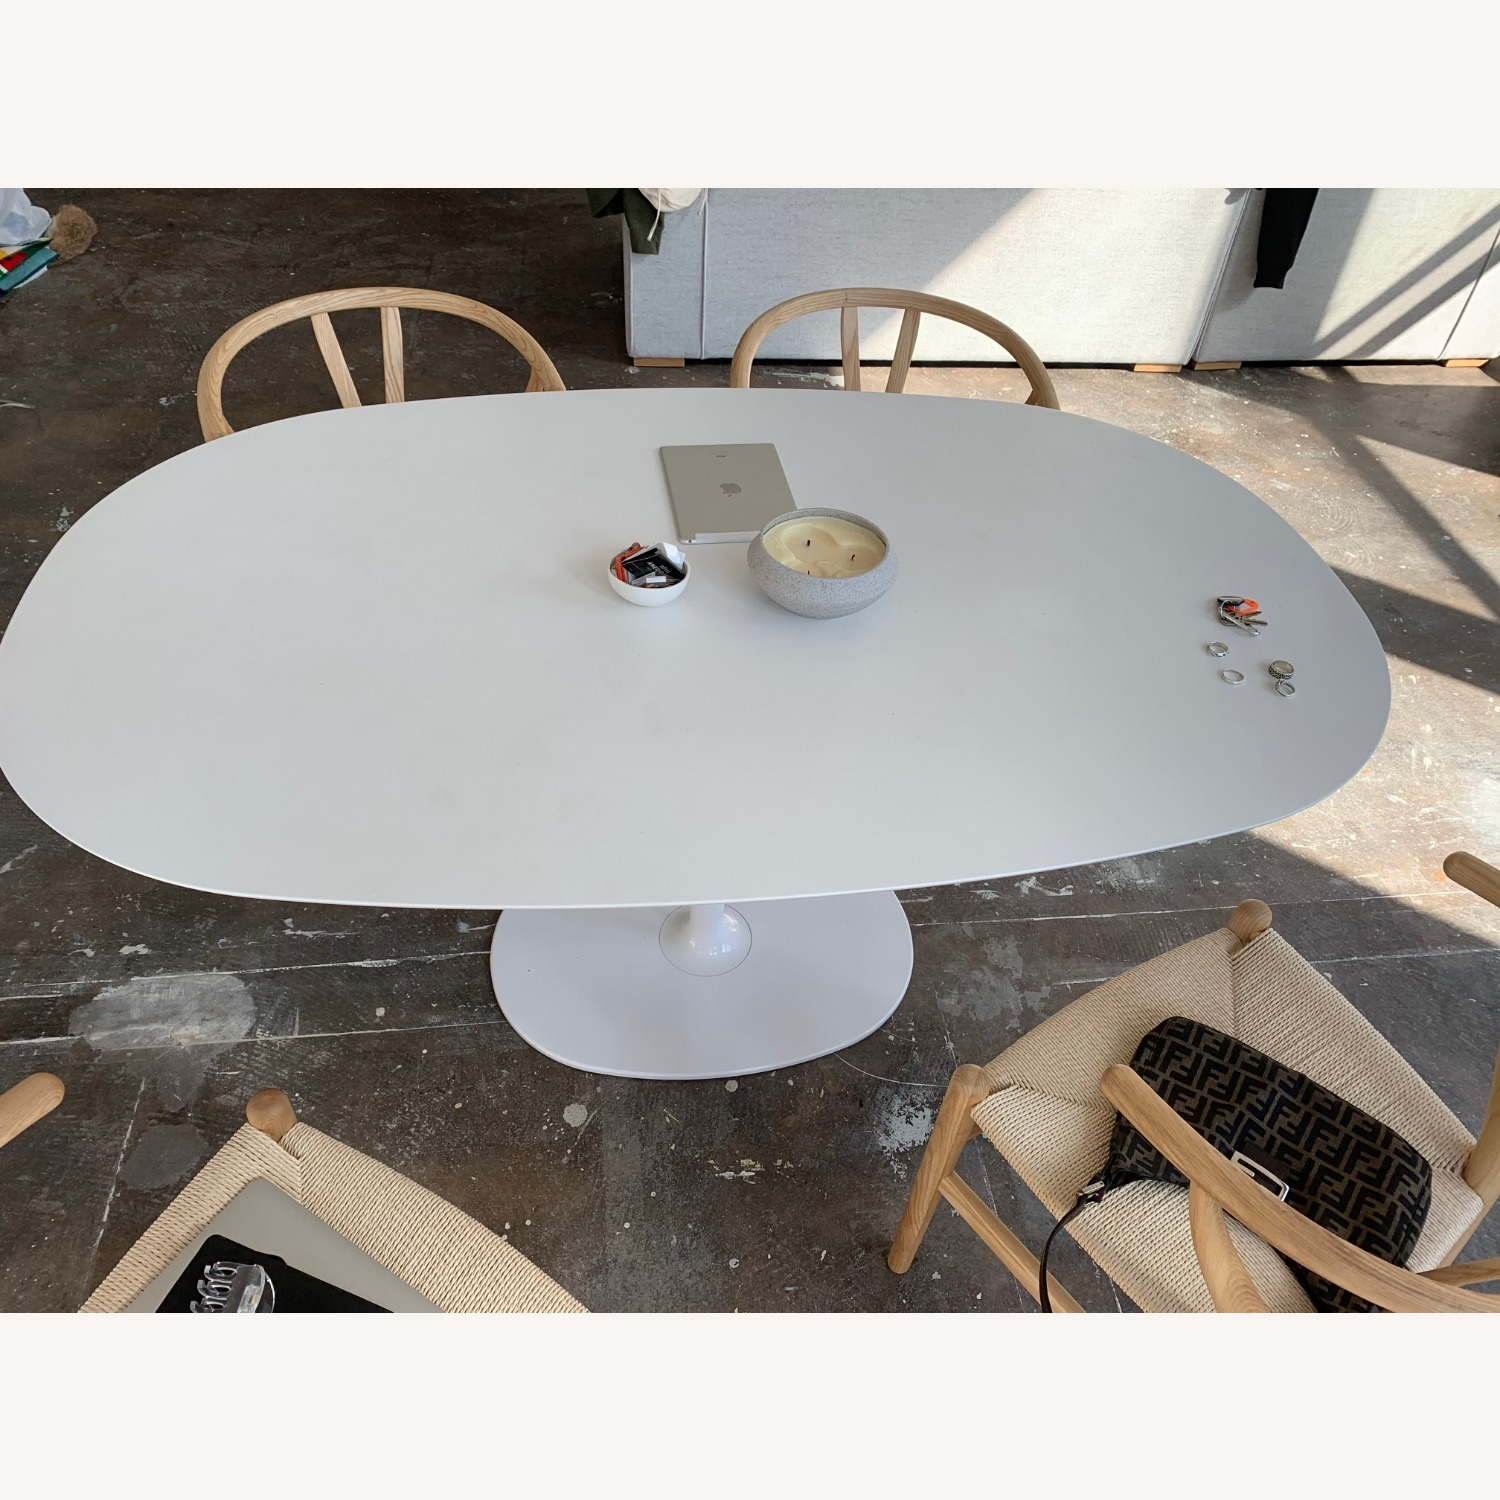 Design With In Reach Saarinen Dining Table - image-1